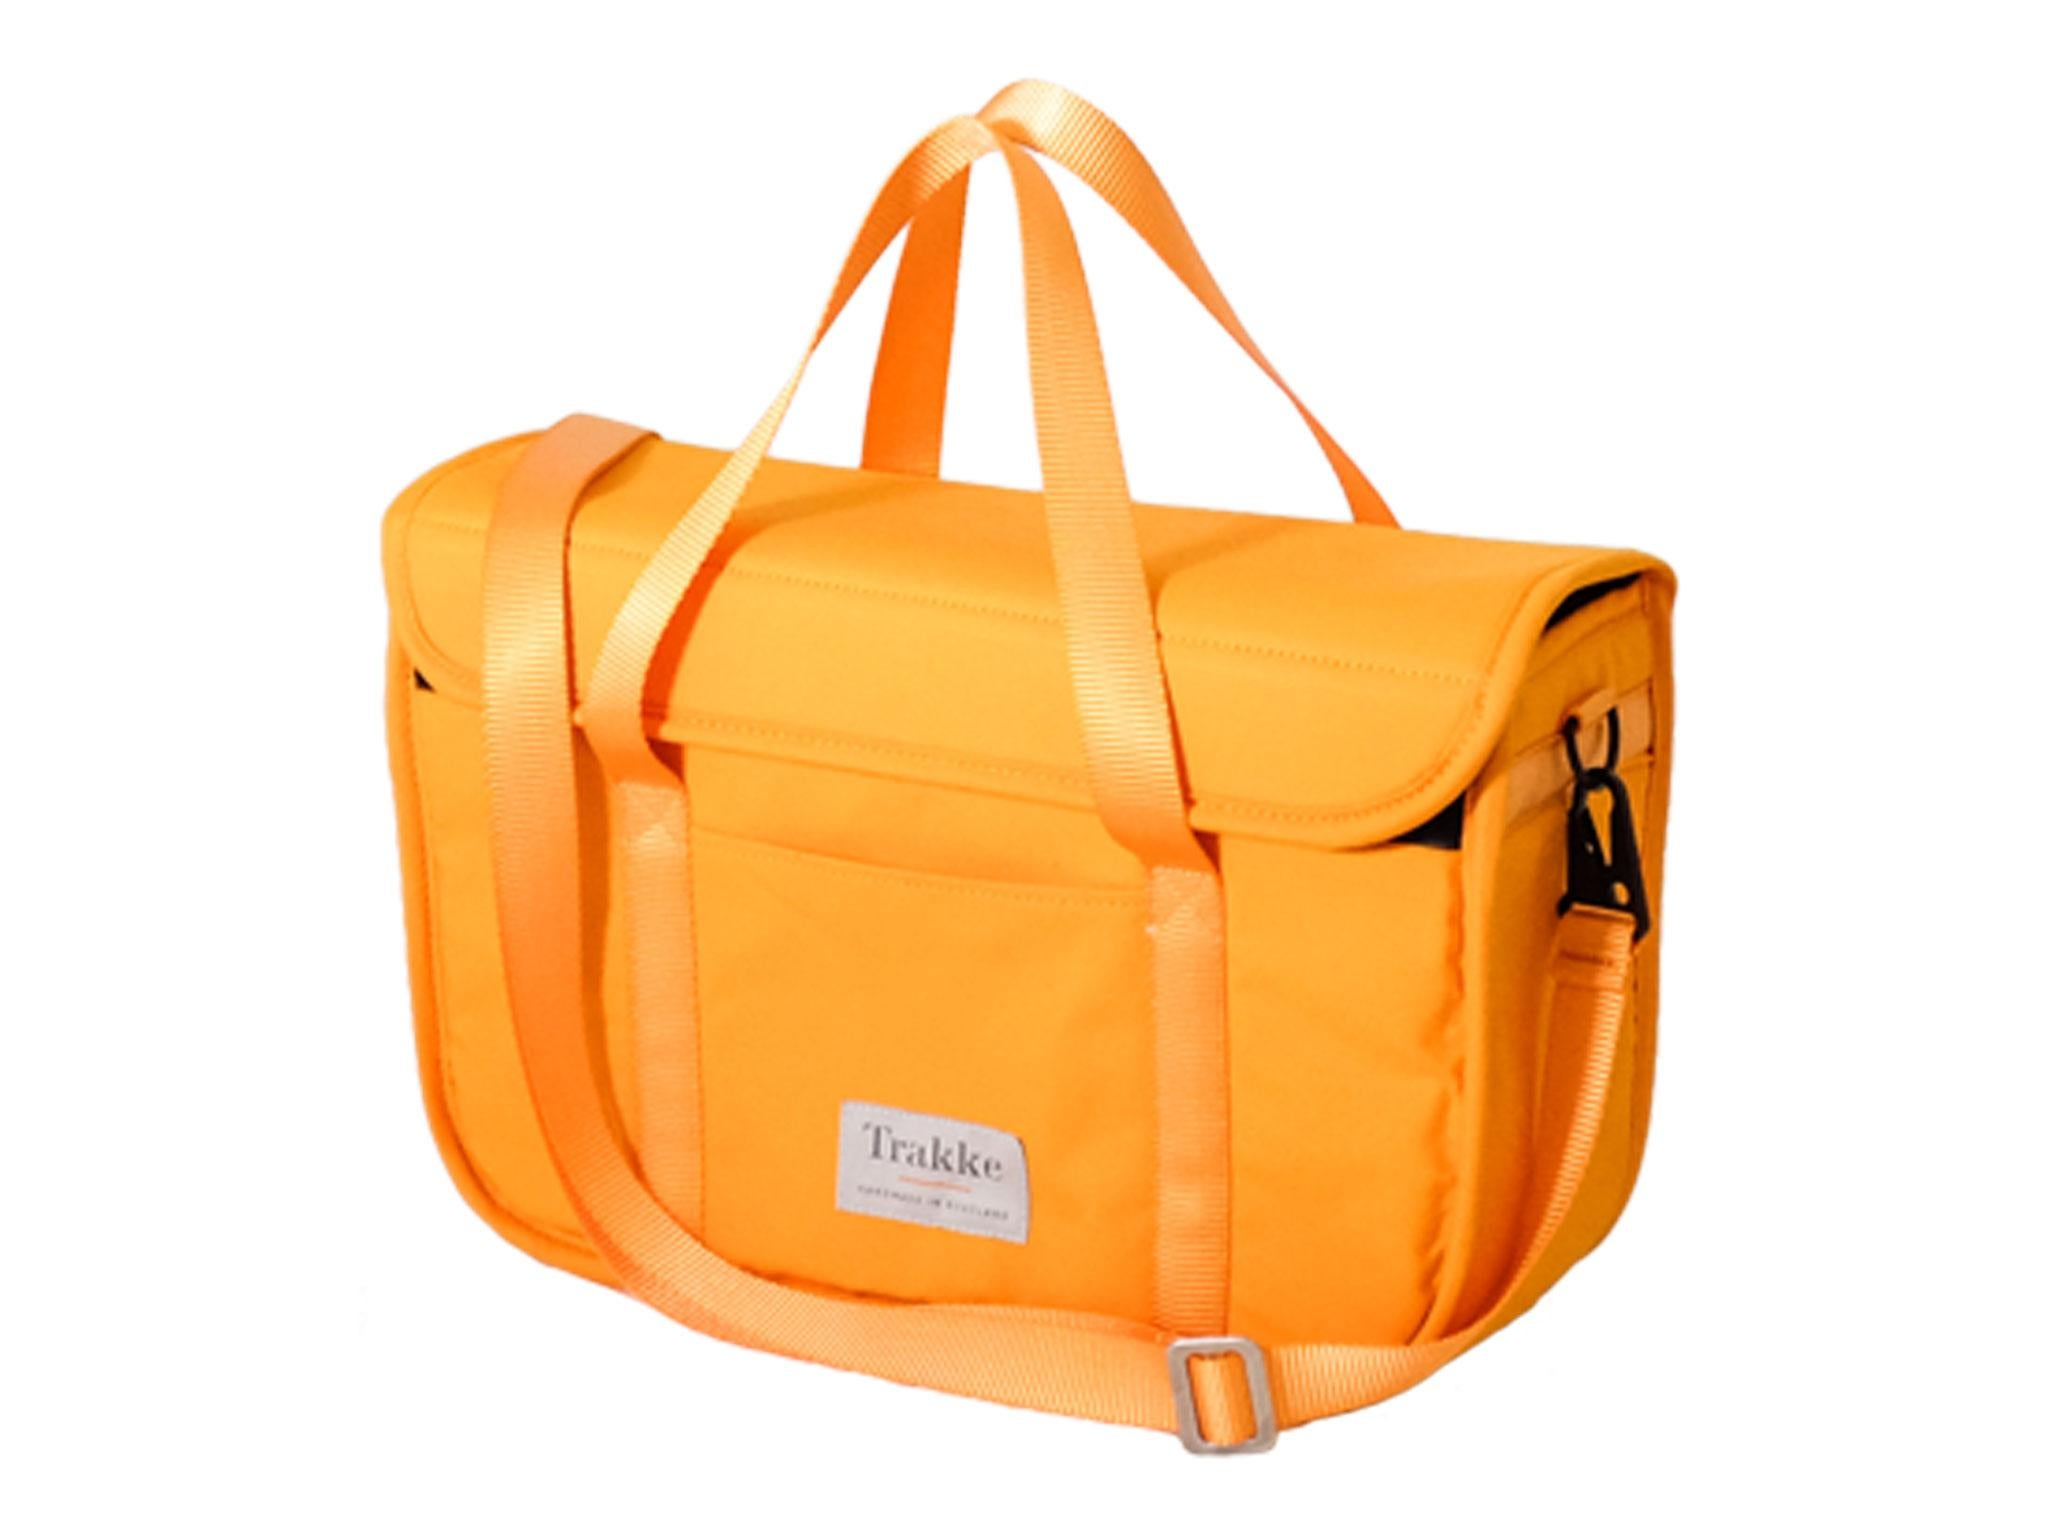 9 Best Camera Bags For Dslrs And Cscs The Independent Billingham Hadley Shoulder Bag Small Sage Choc Leather Trim If You Bought Trakkes Wee Lug Mk2 Our Messenger Buy Youll Appreciate This Bright Orange Accessory Made From Tough Dry Waxed Cotton